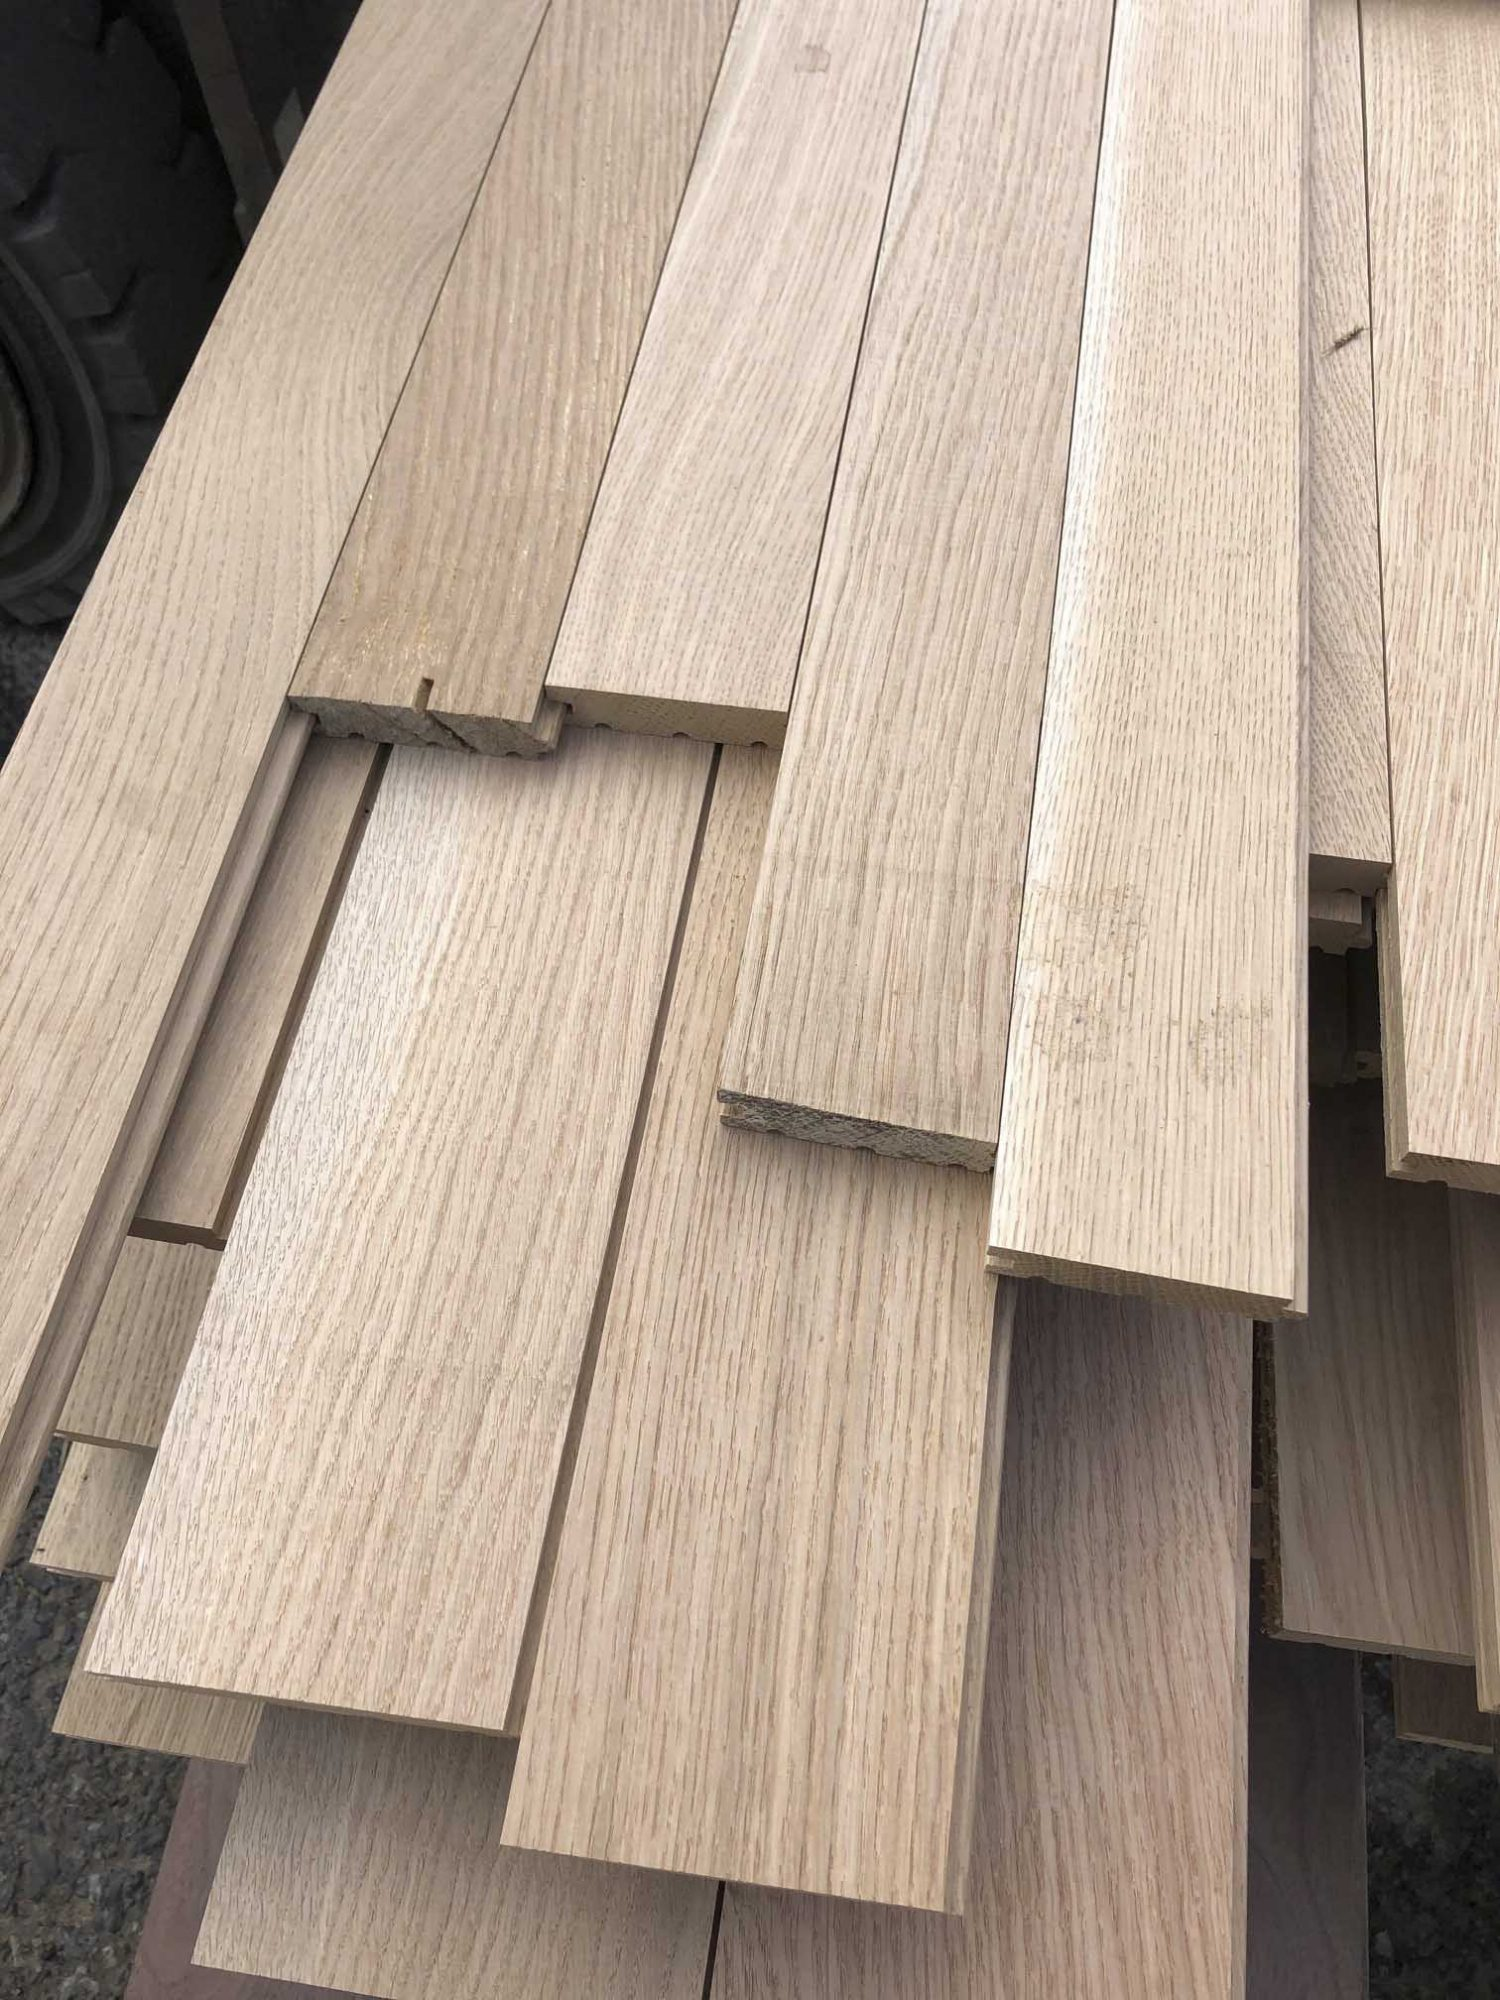 Buy quartersawn rift white oak flooring at Hearne Hardwoods Inc.